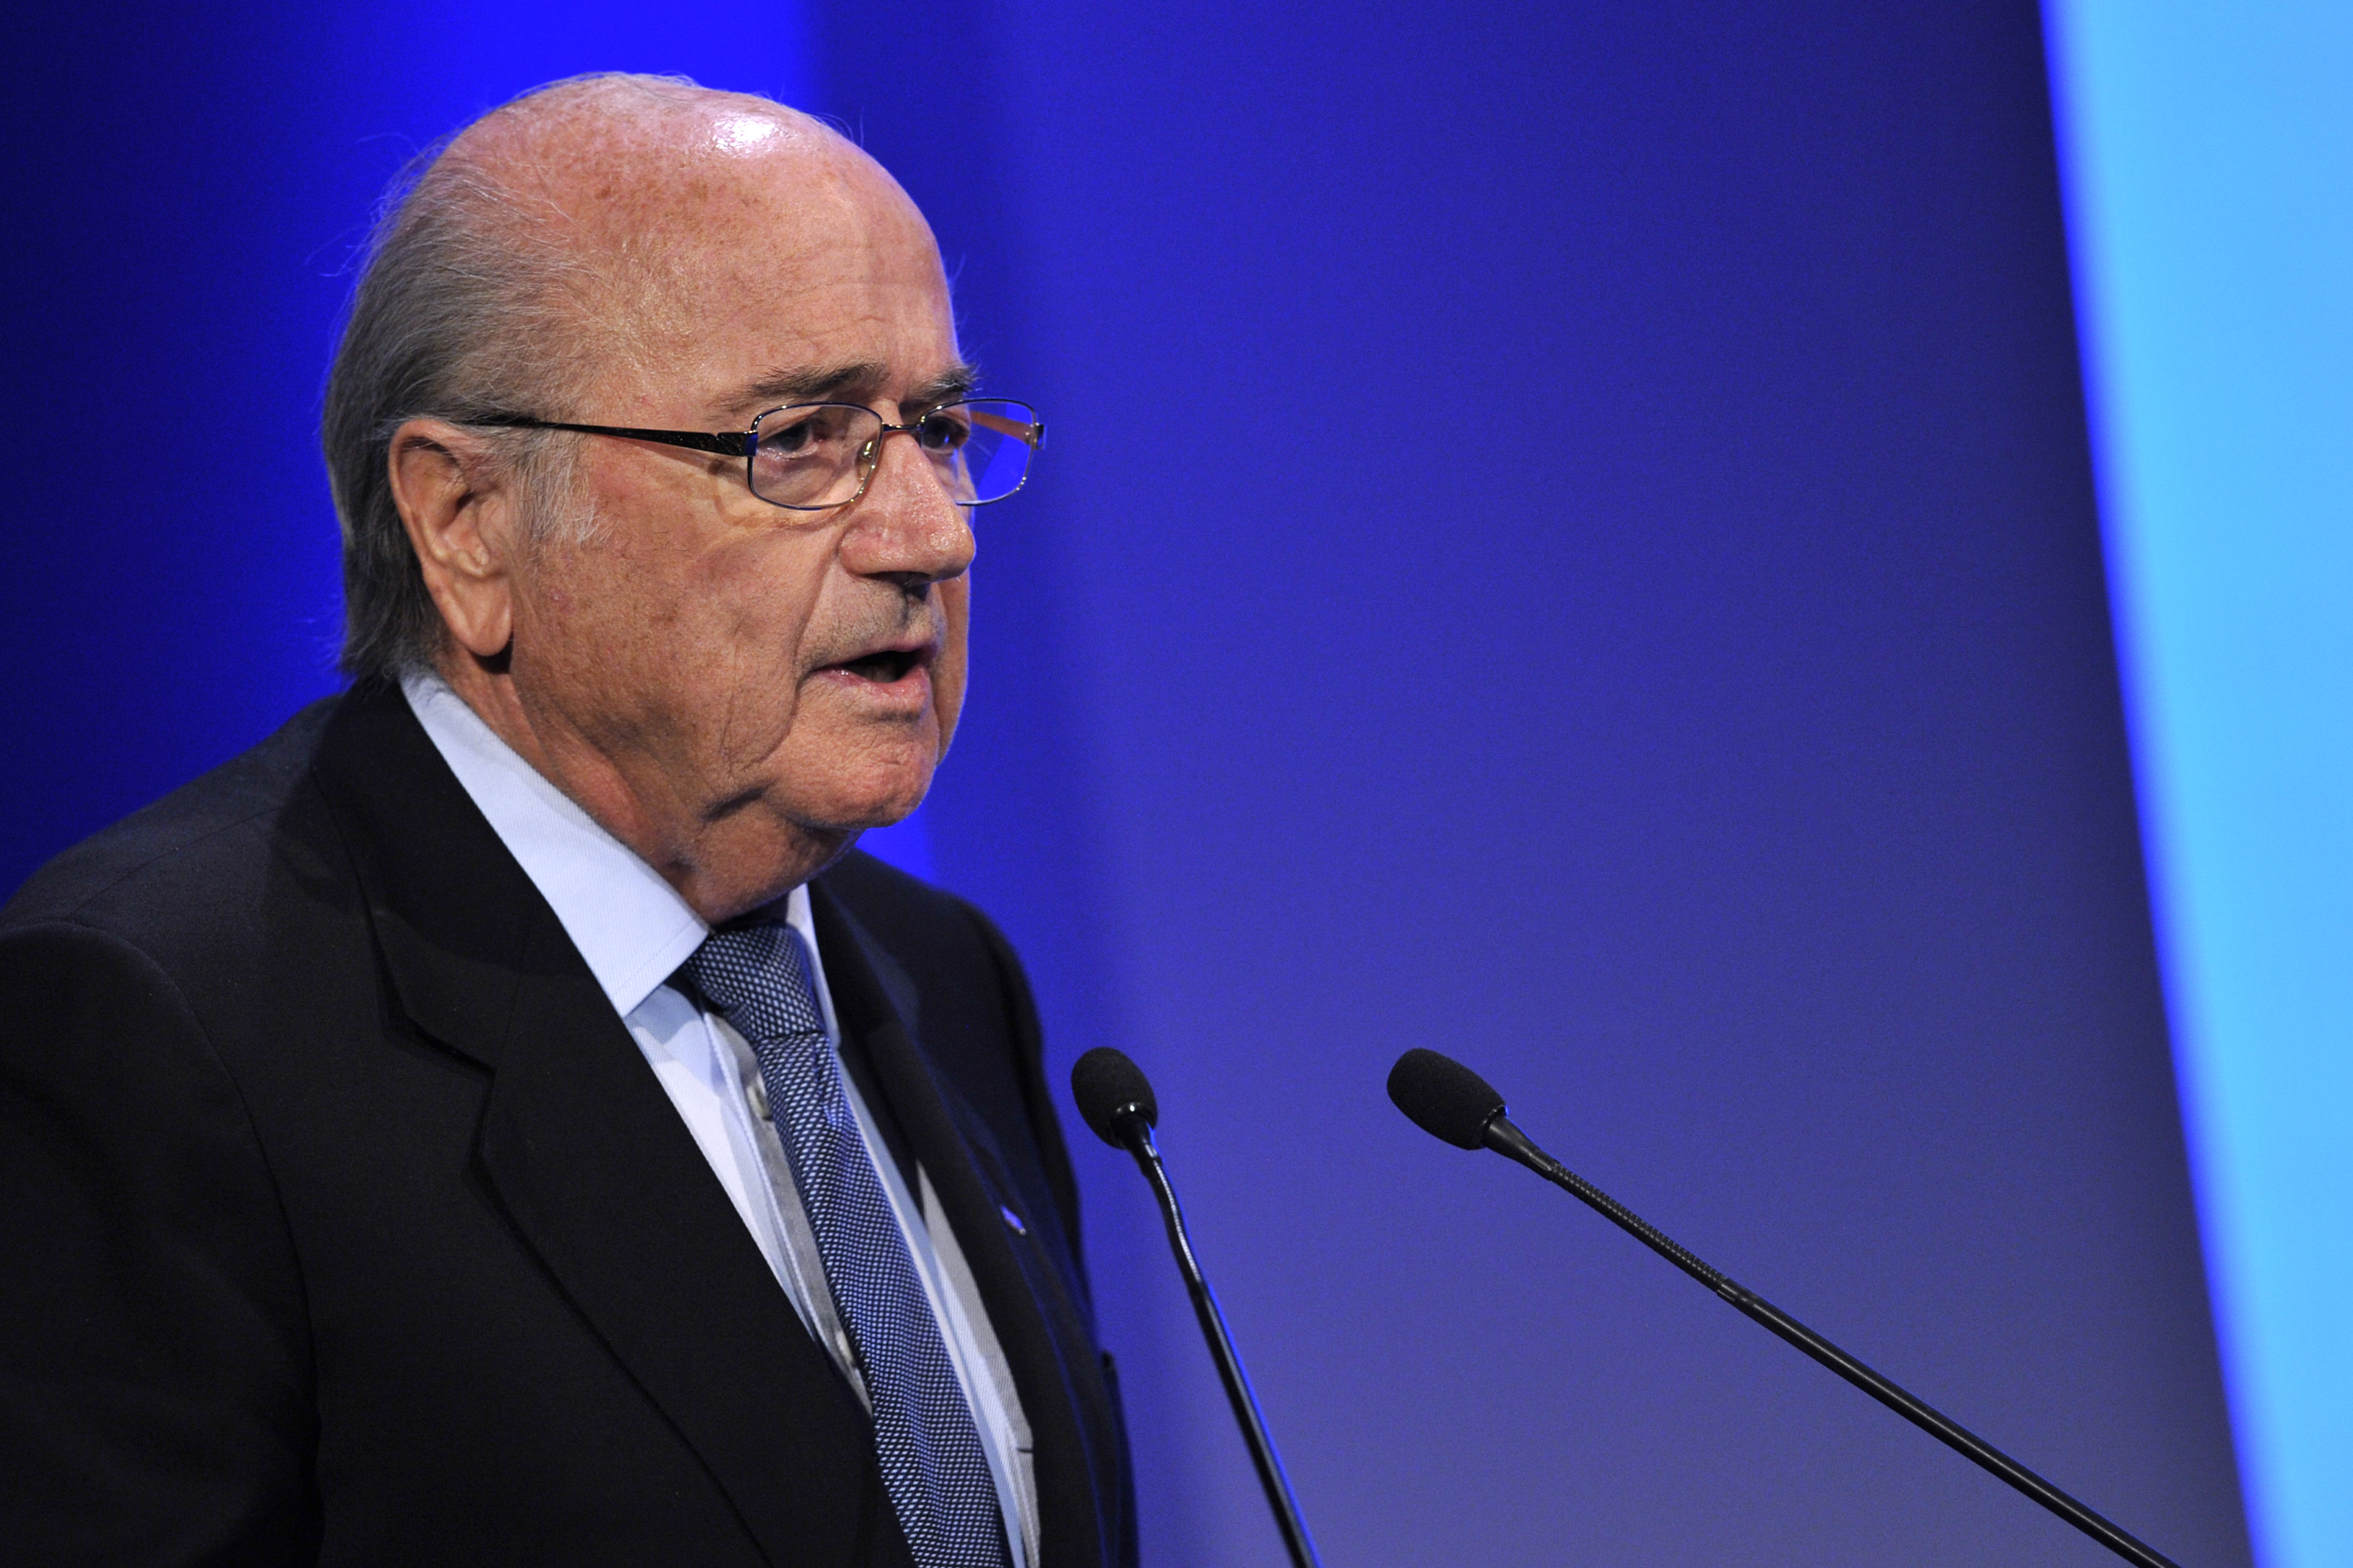 Sepp Blatter finally admits giving Qatar the World Cup 'was a mistake'